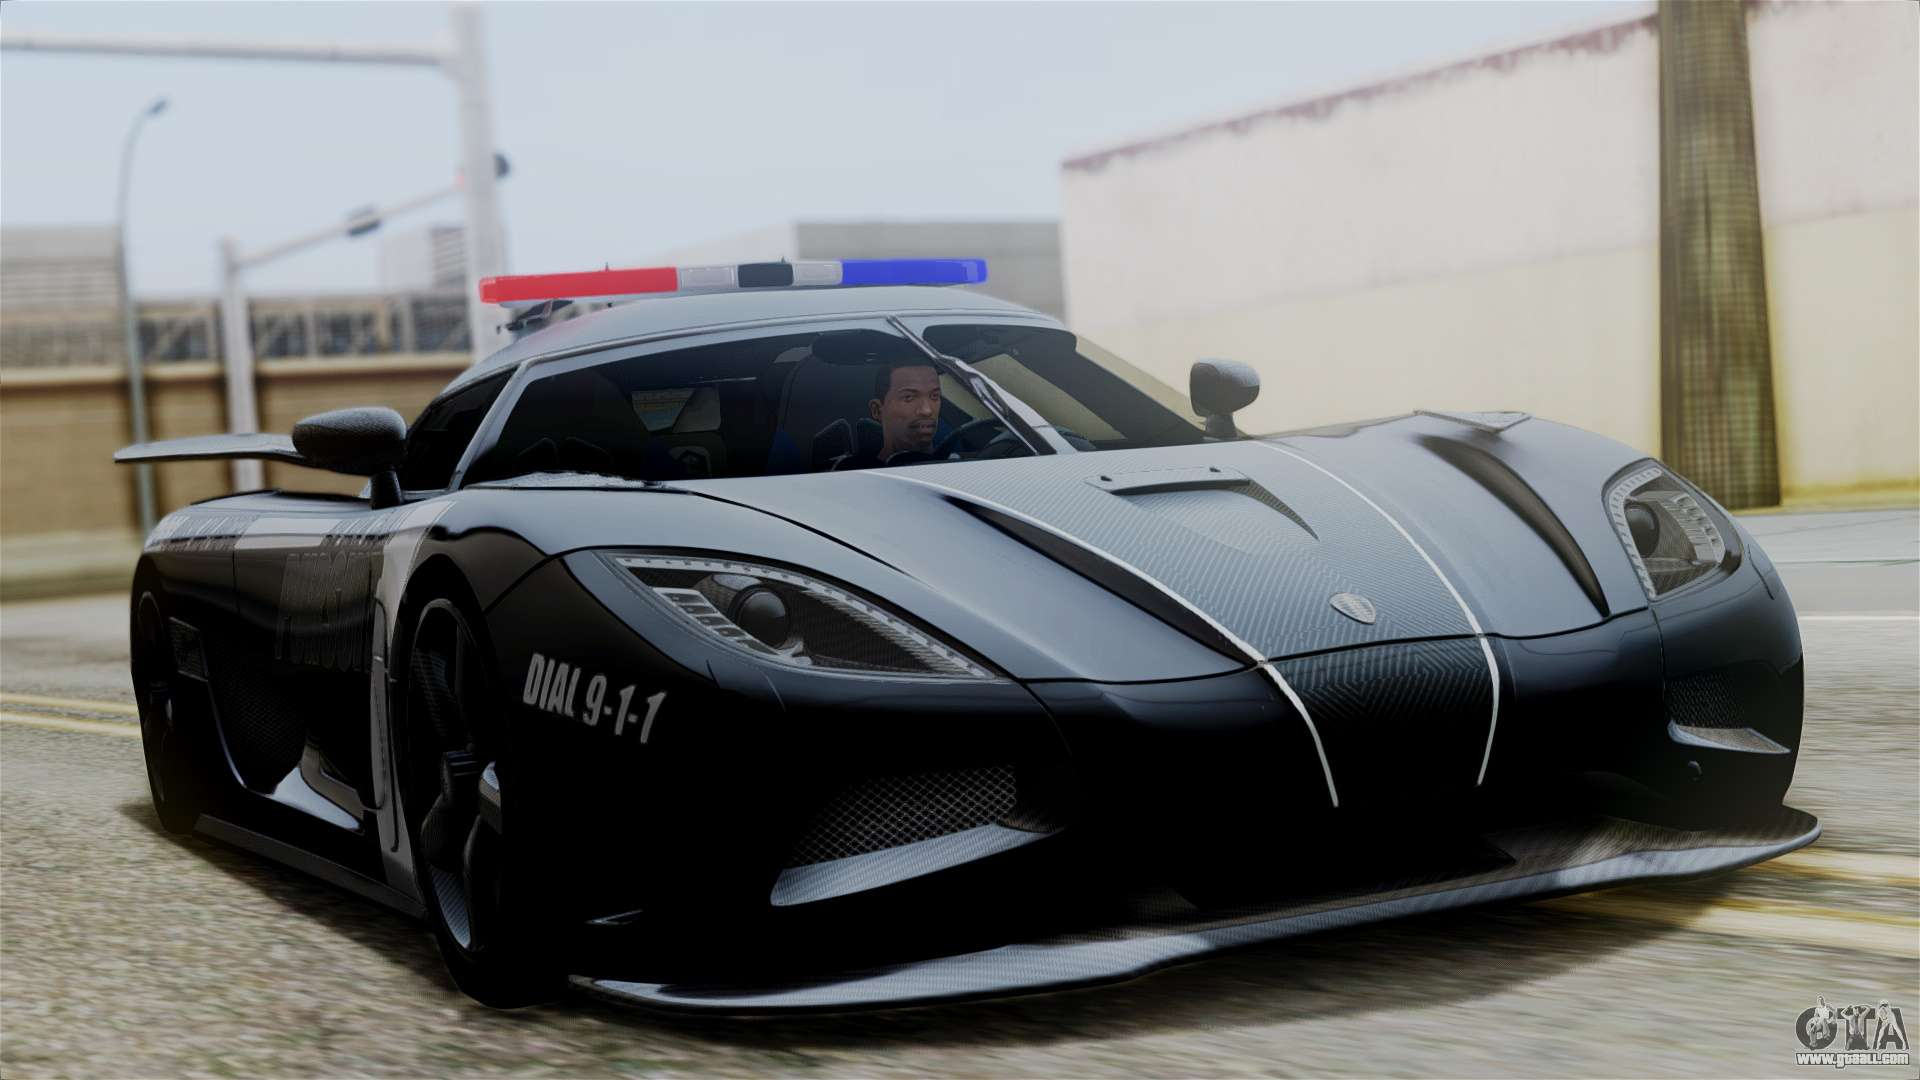 1920x1080 nfs most wanted 5